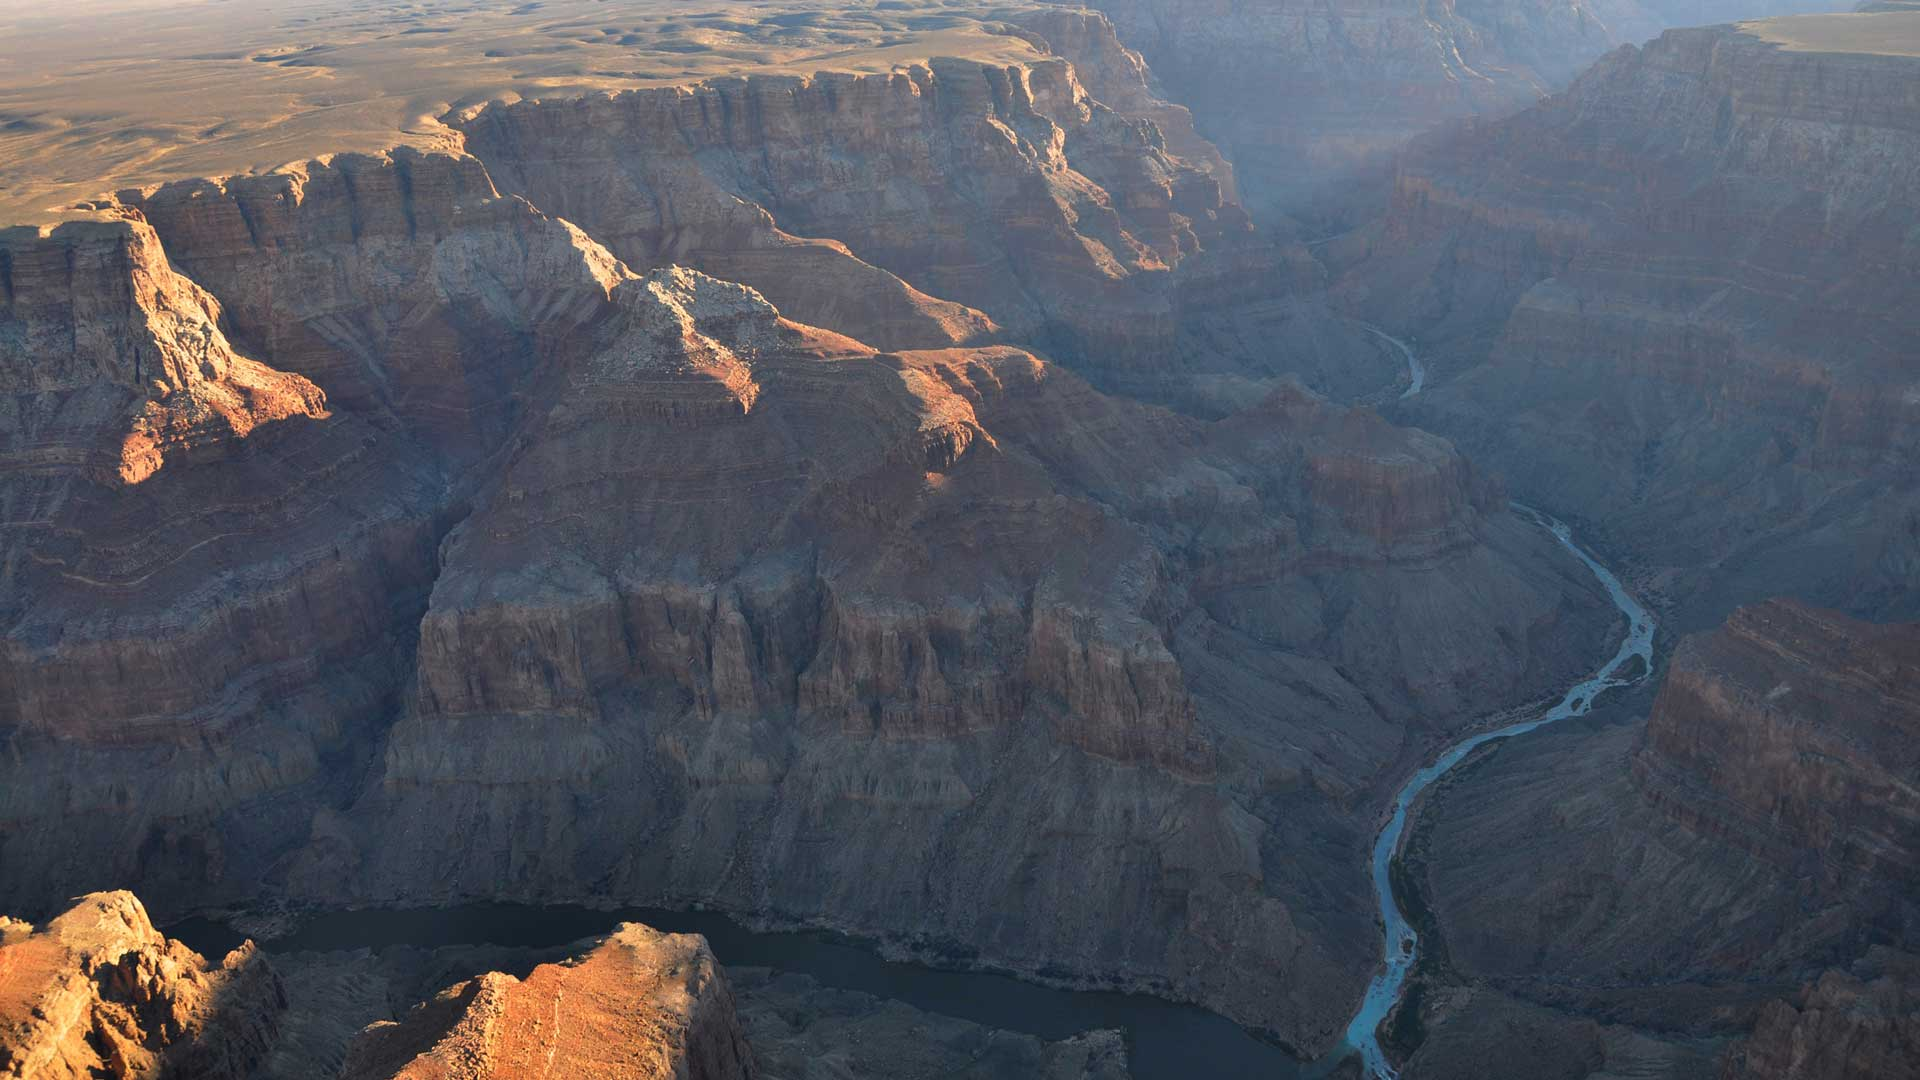 A view looking east with the confluence of the Little Colorado and Colorado rivers below, November 2010.